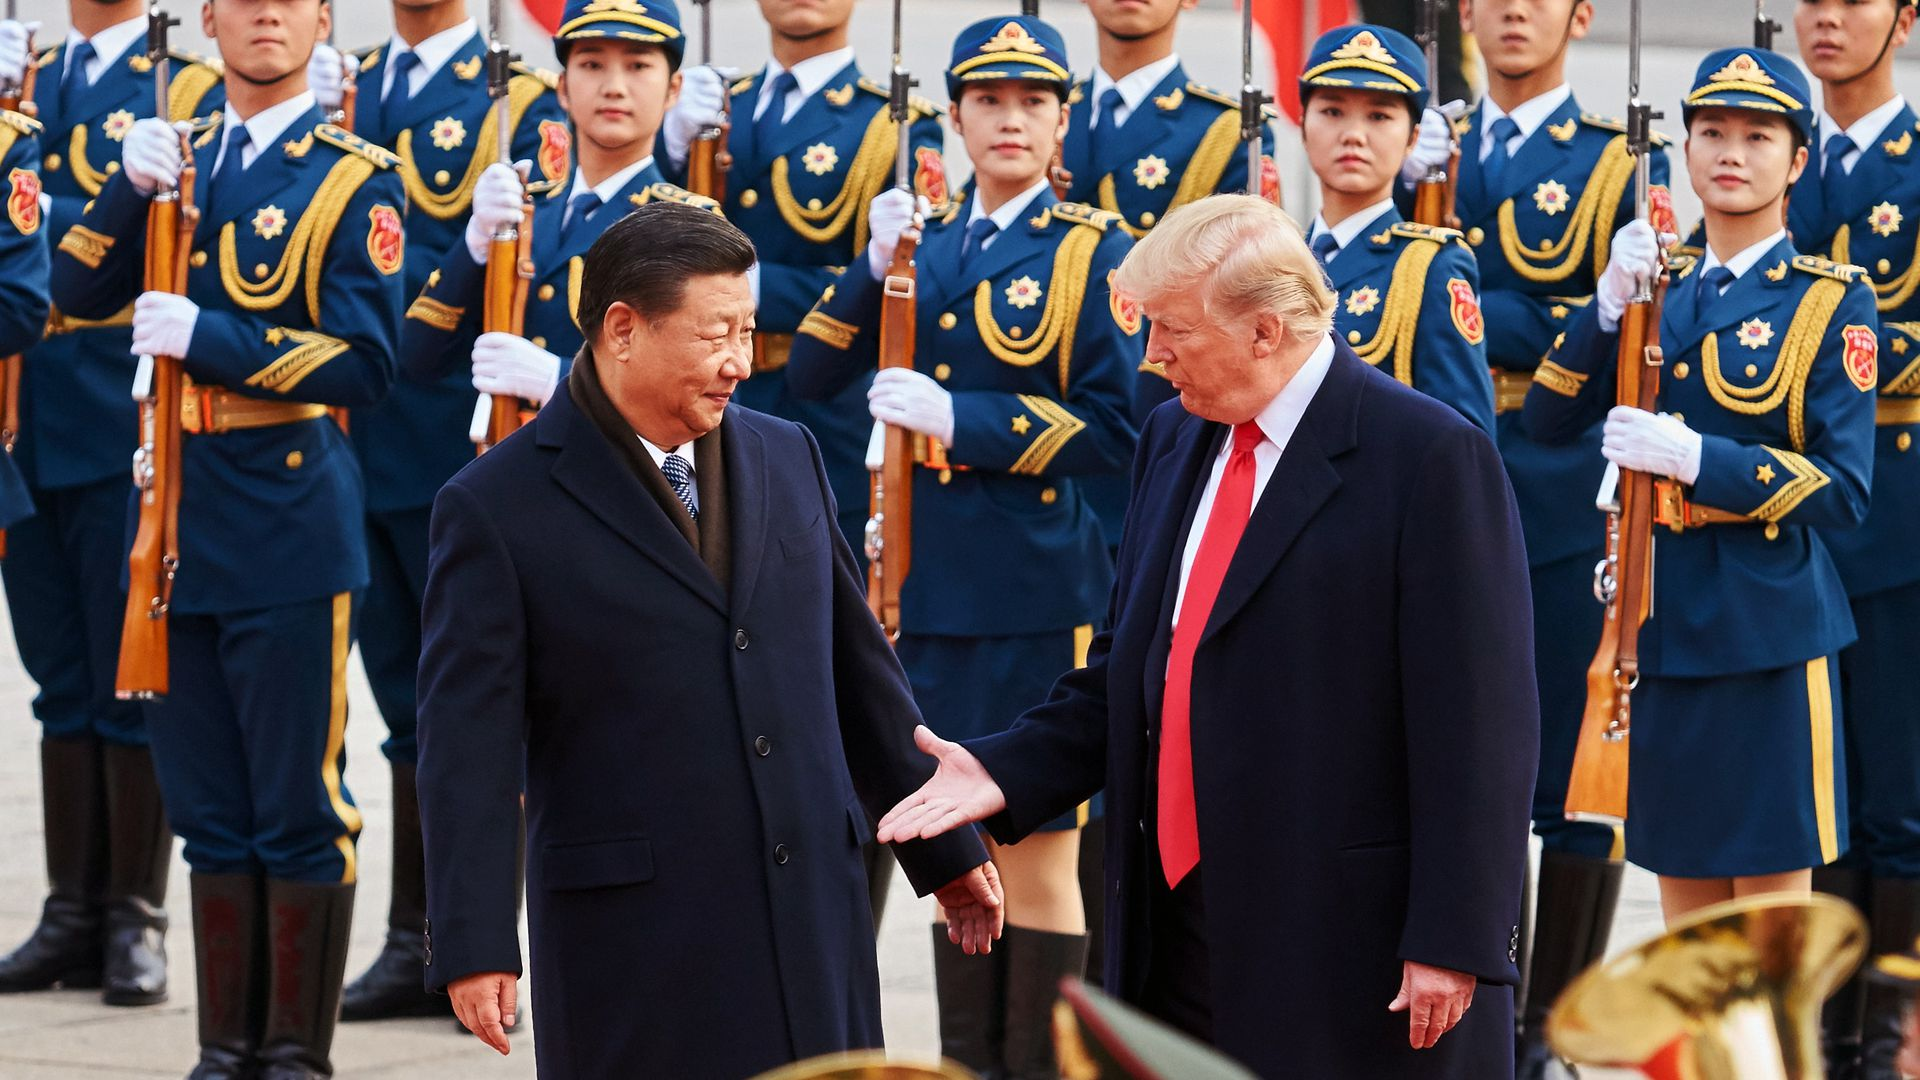 China's President Xi Jinping and US President Donald Trump (L-R front) shake hands during a meeting outside the Great Hall of the People in Beijing.